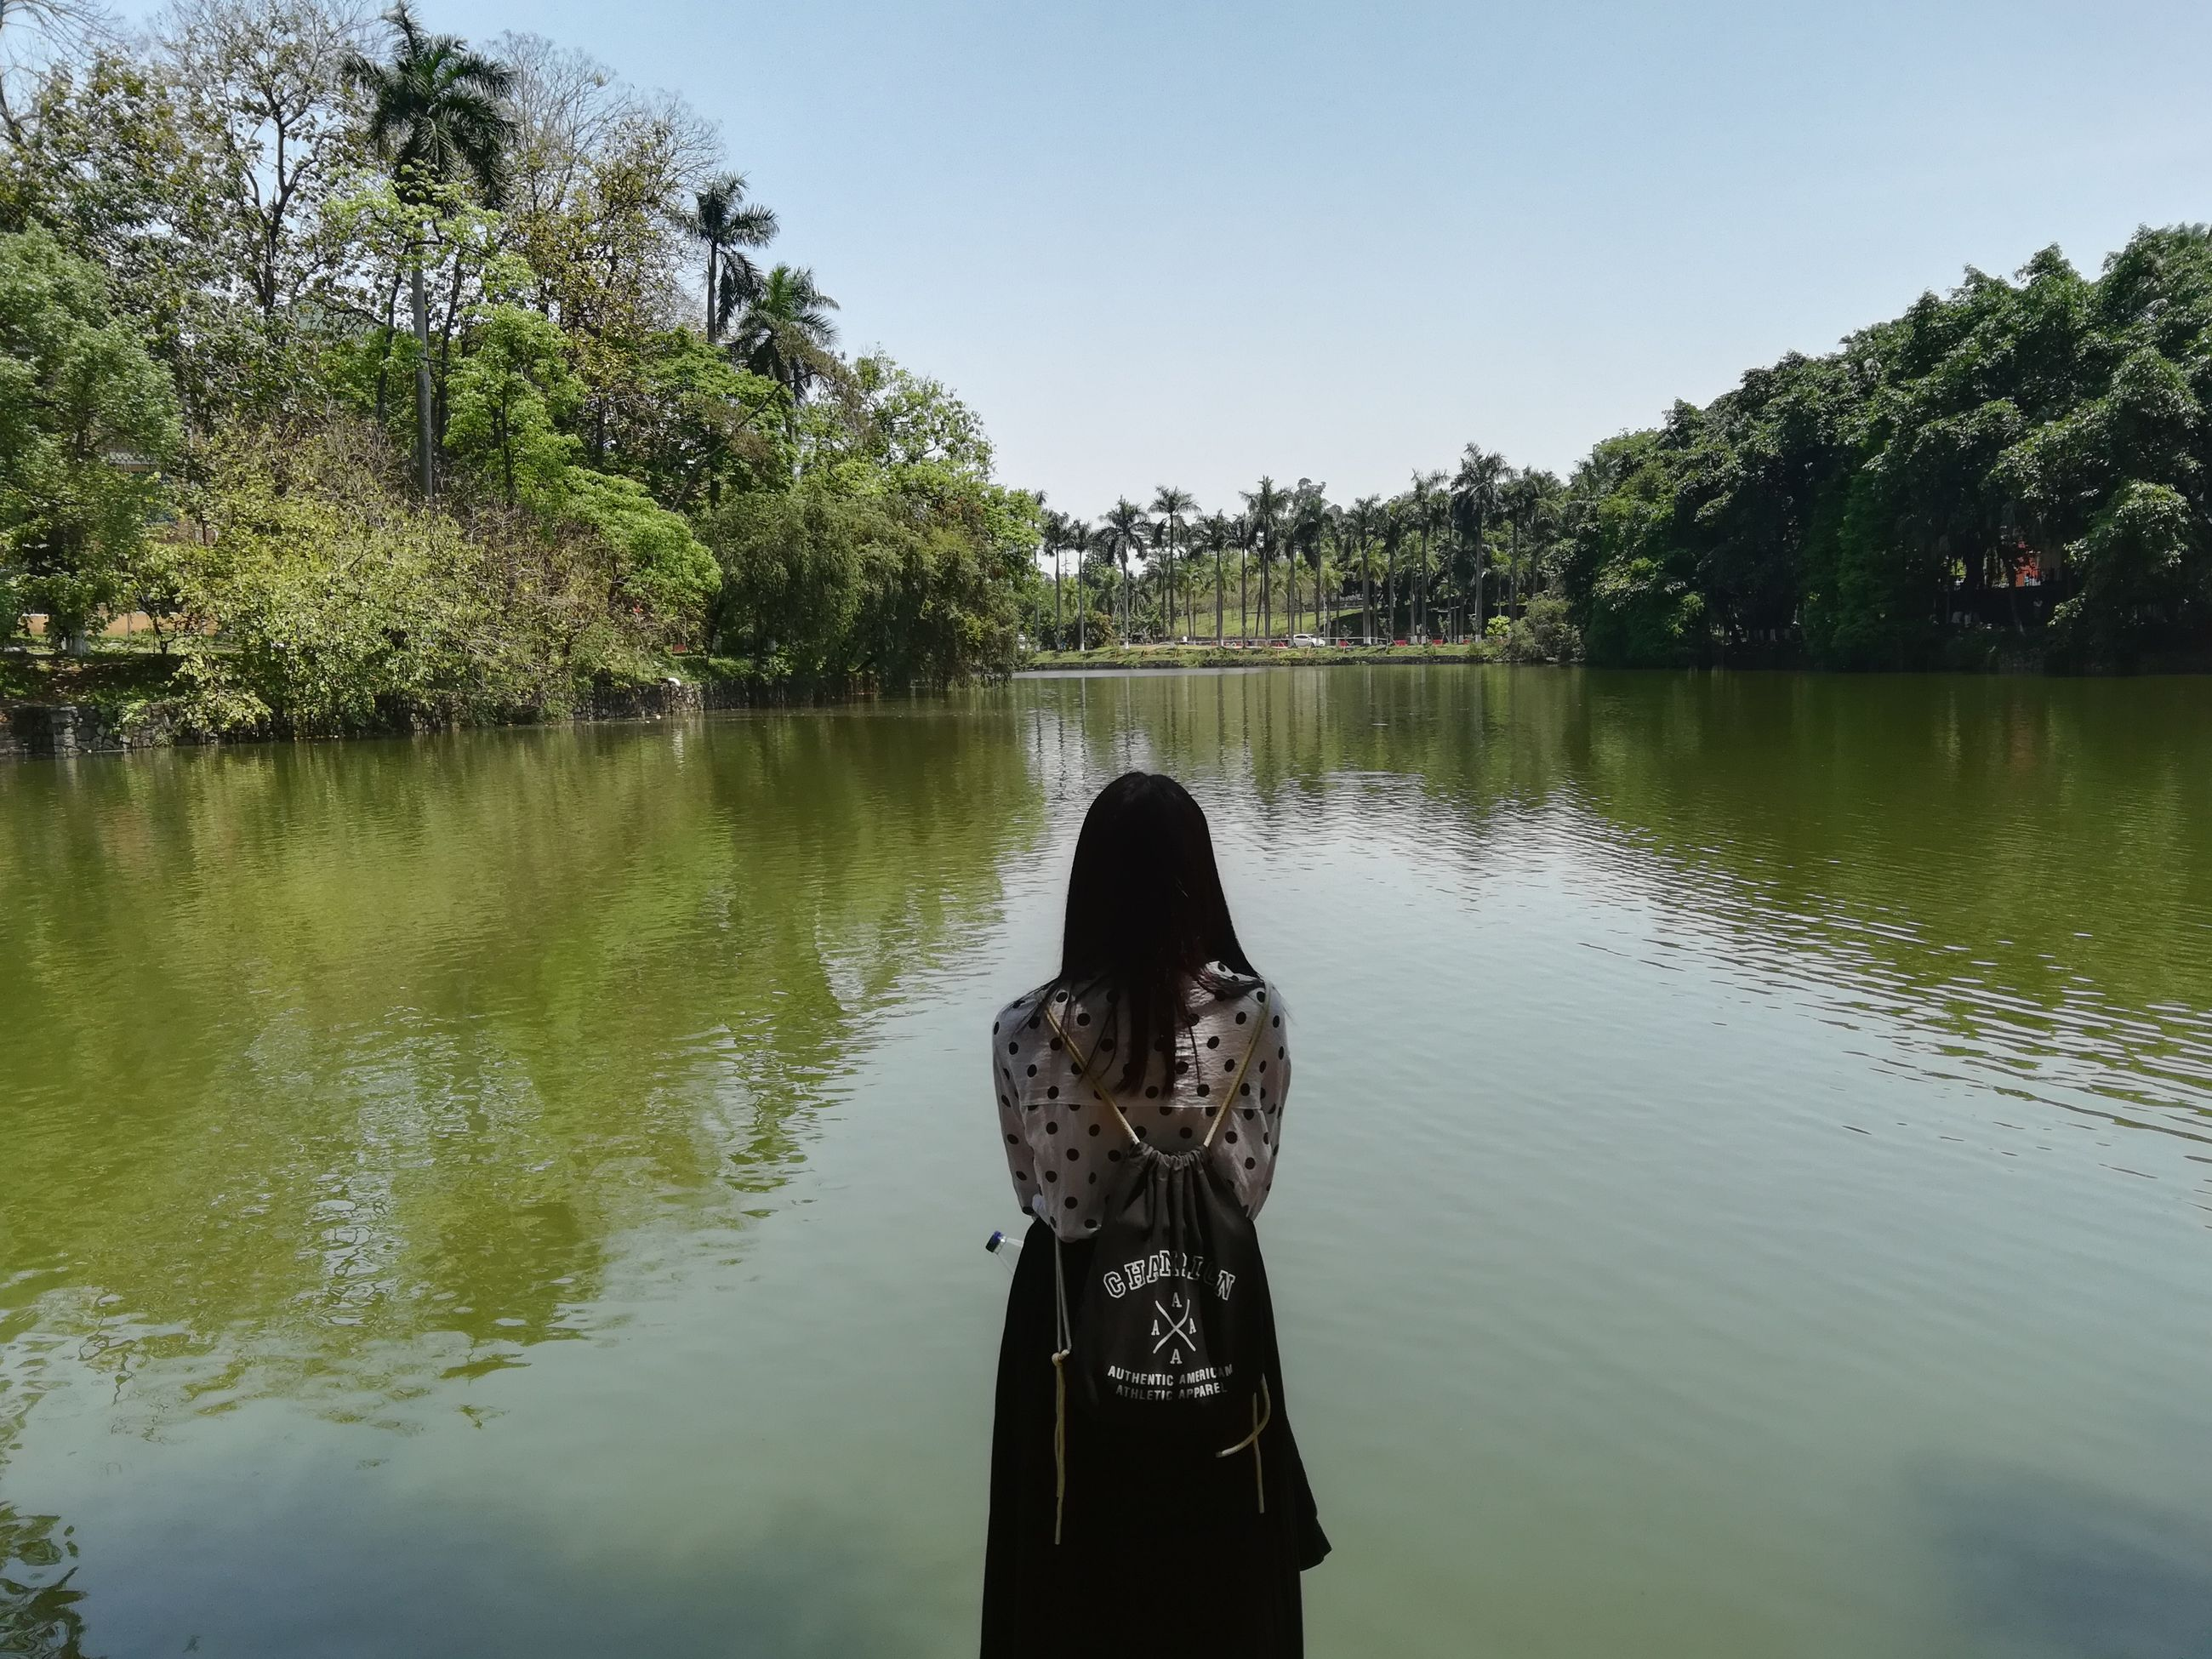 tree, water, one person, real people, standing, nature, outdoors, rear view, reflection, day, leisure activity, lake, lifestyles, beauty in nature, growth, women, photographing, clear sky, sky, young women, young adult, people